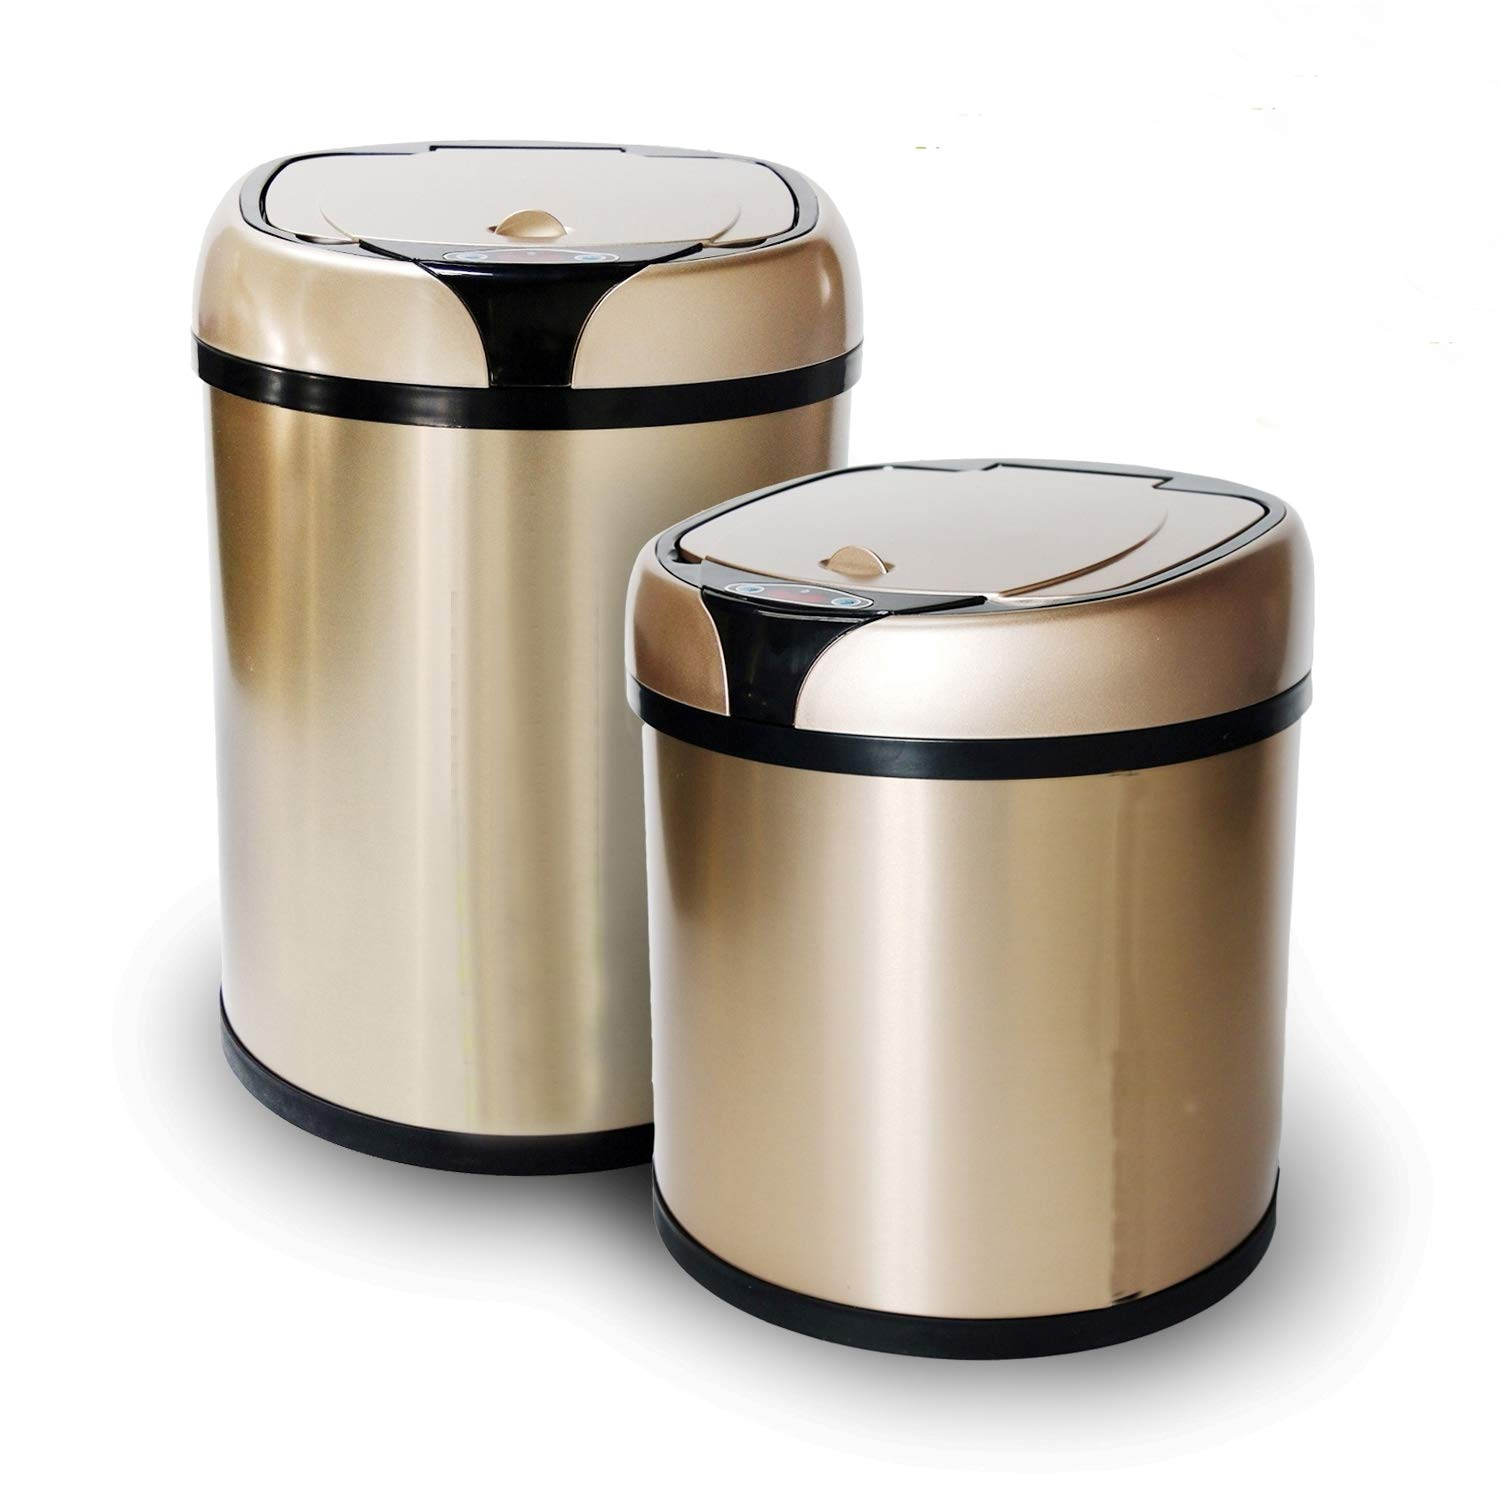 Stainless Steel Automatic Trash Can Touchless Automatic Motion Sensor Trash Can Kitchen Trash Bin (1.58Gal/6L) MuMu New Life